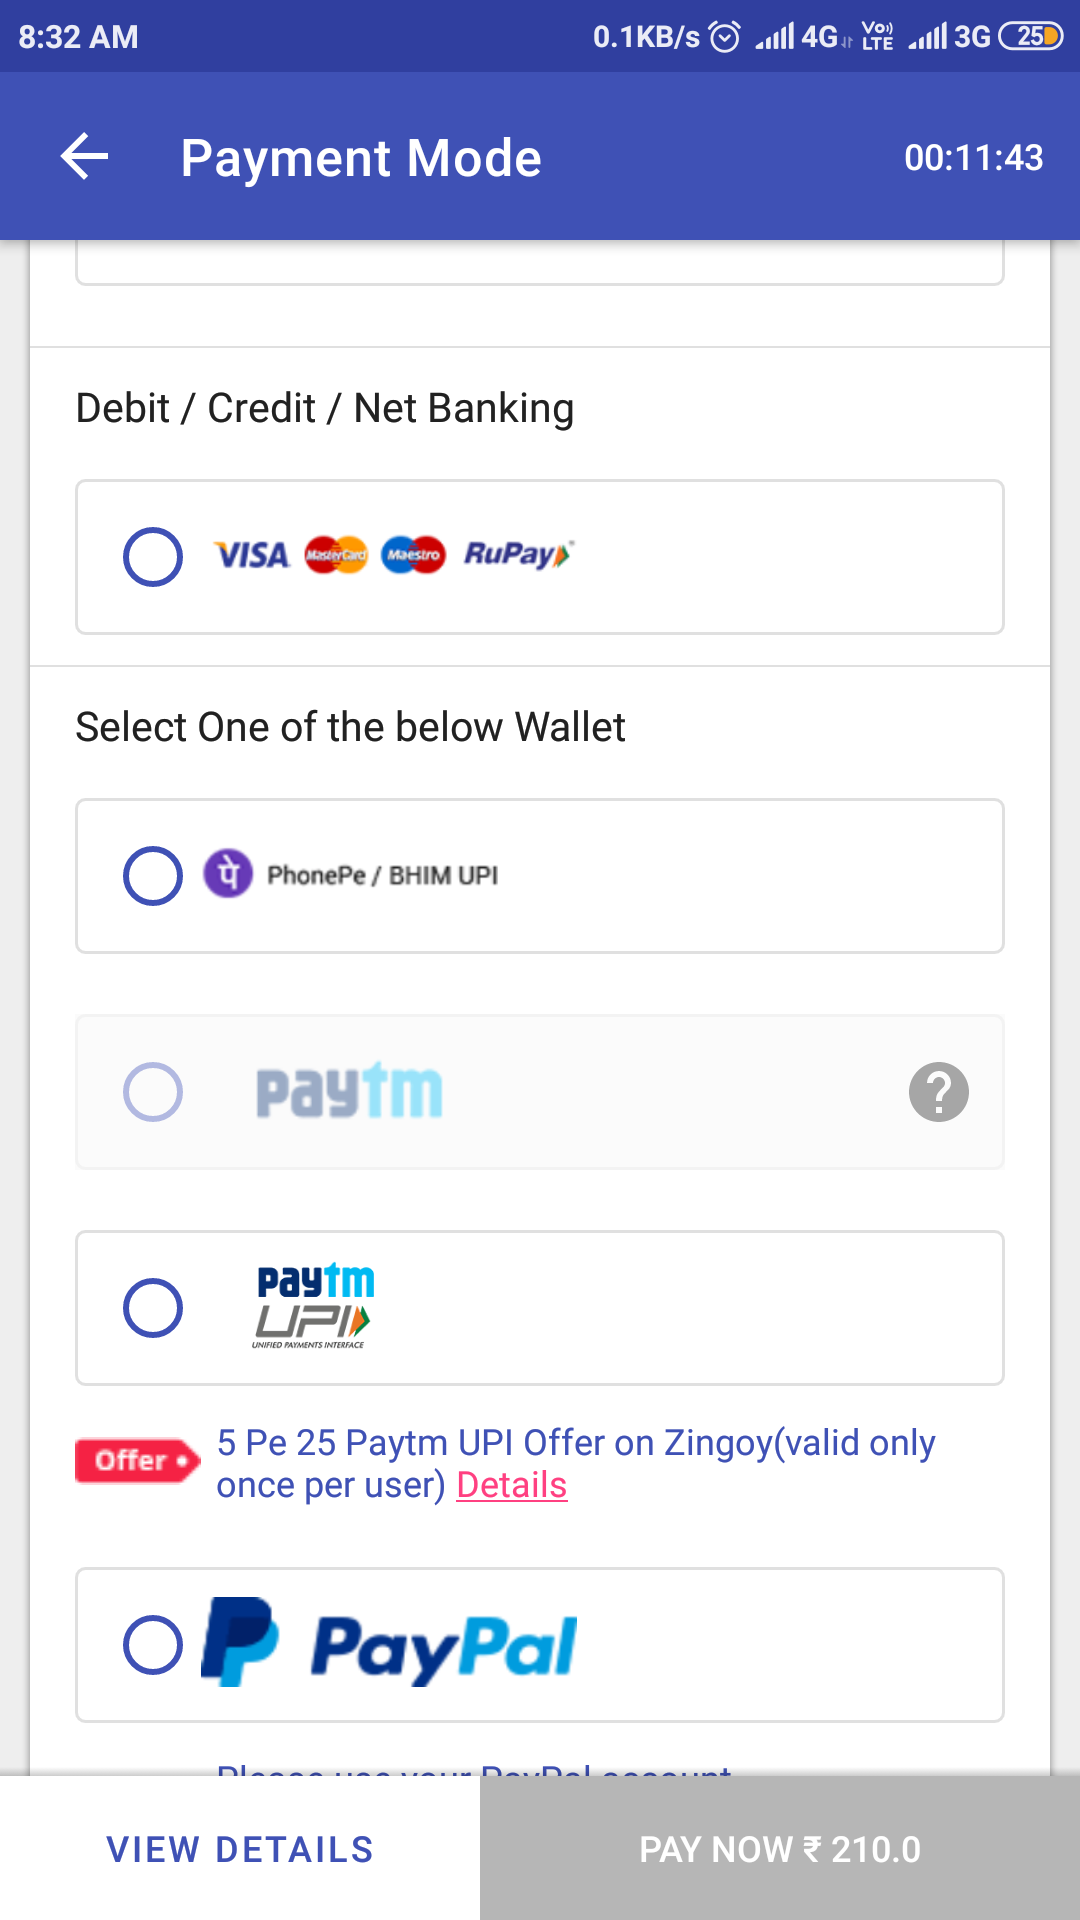 Zingoy 5 Pe 25 Offer: Make 5 transactions and get Rs 25